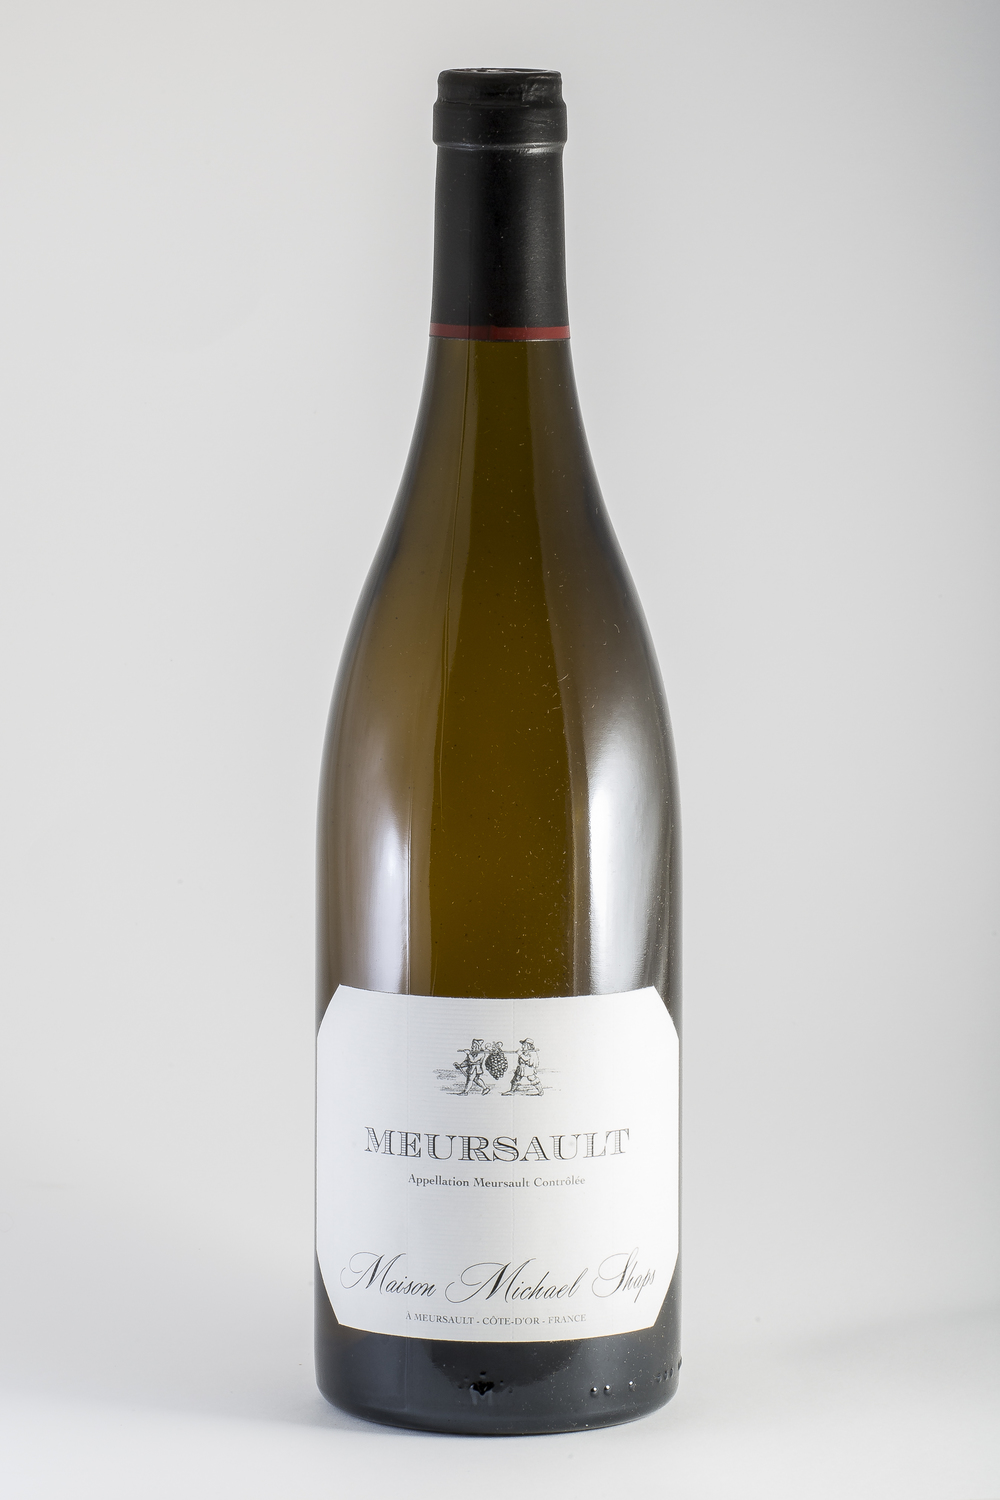 Maison Shaps 2014 Meursault $48 Grown at two different sites in the village, the wine is barrel fermented in 25% of new oak. The two different sites bring different textures to the finished wine, with classic minerality, with unctuous almond and apple notes. A slight touch of oak enhances the wine and adds to aging potential.